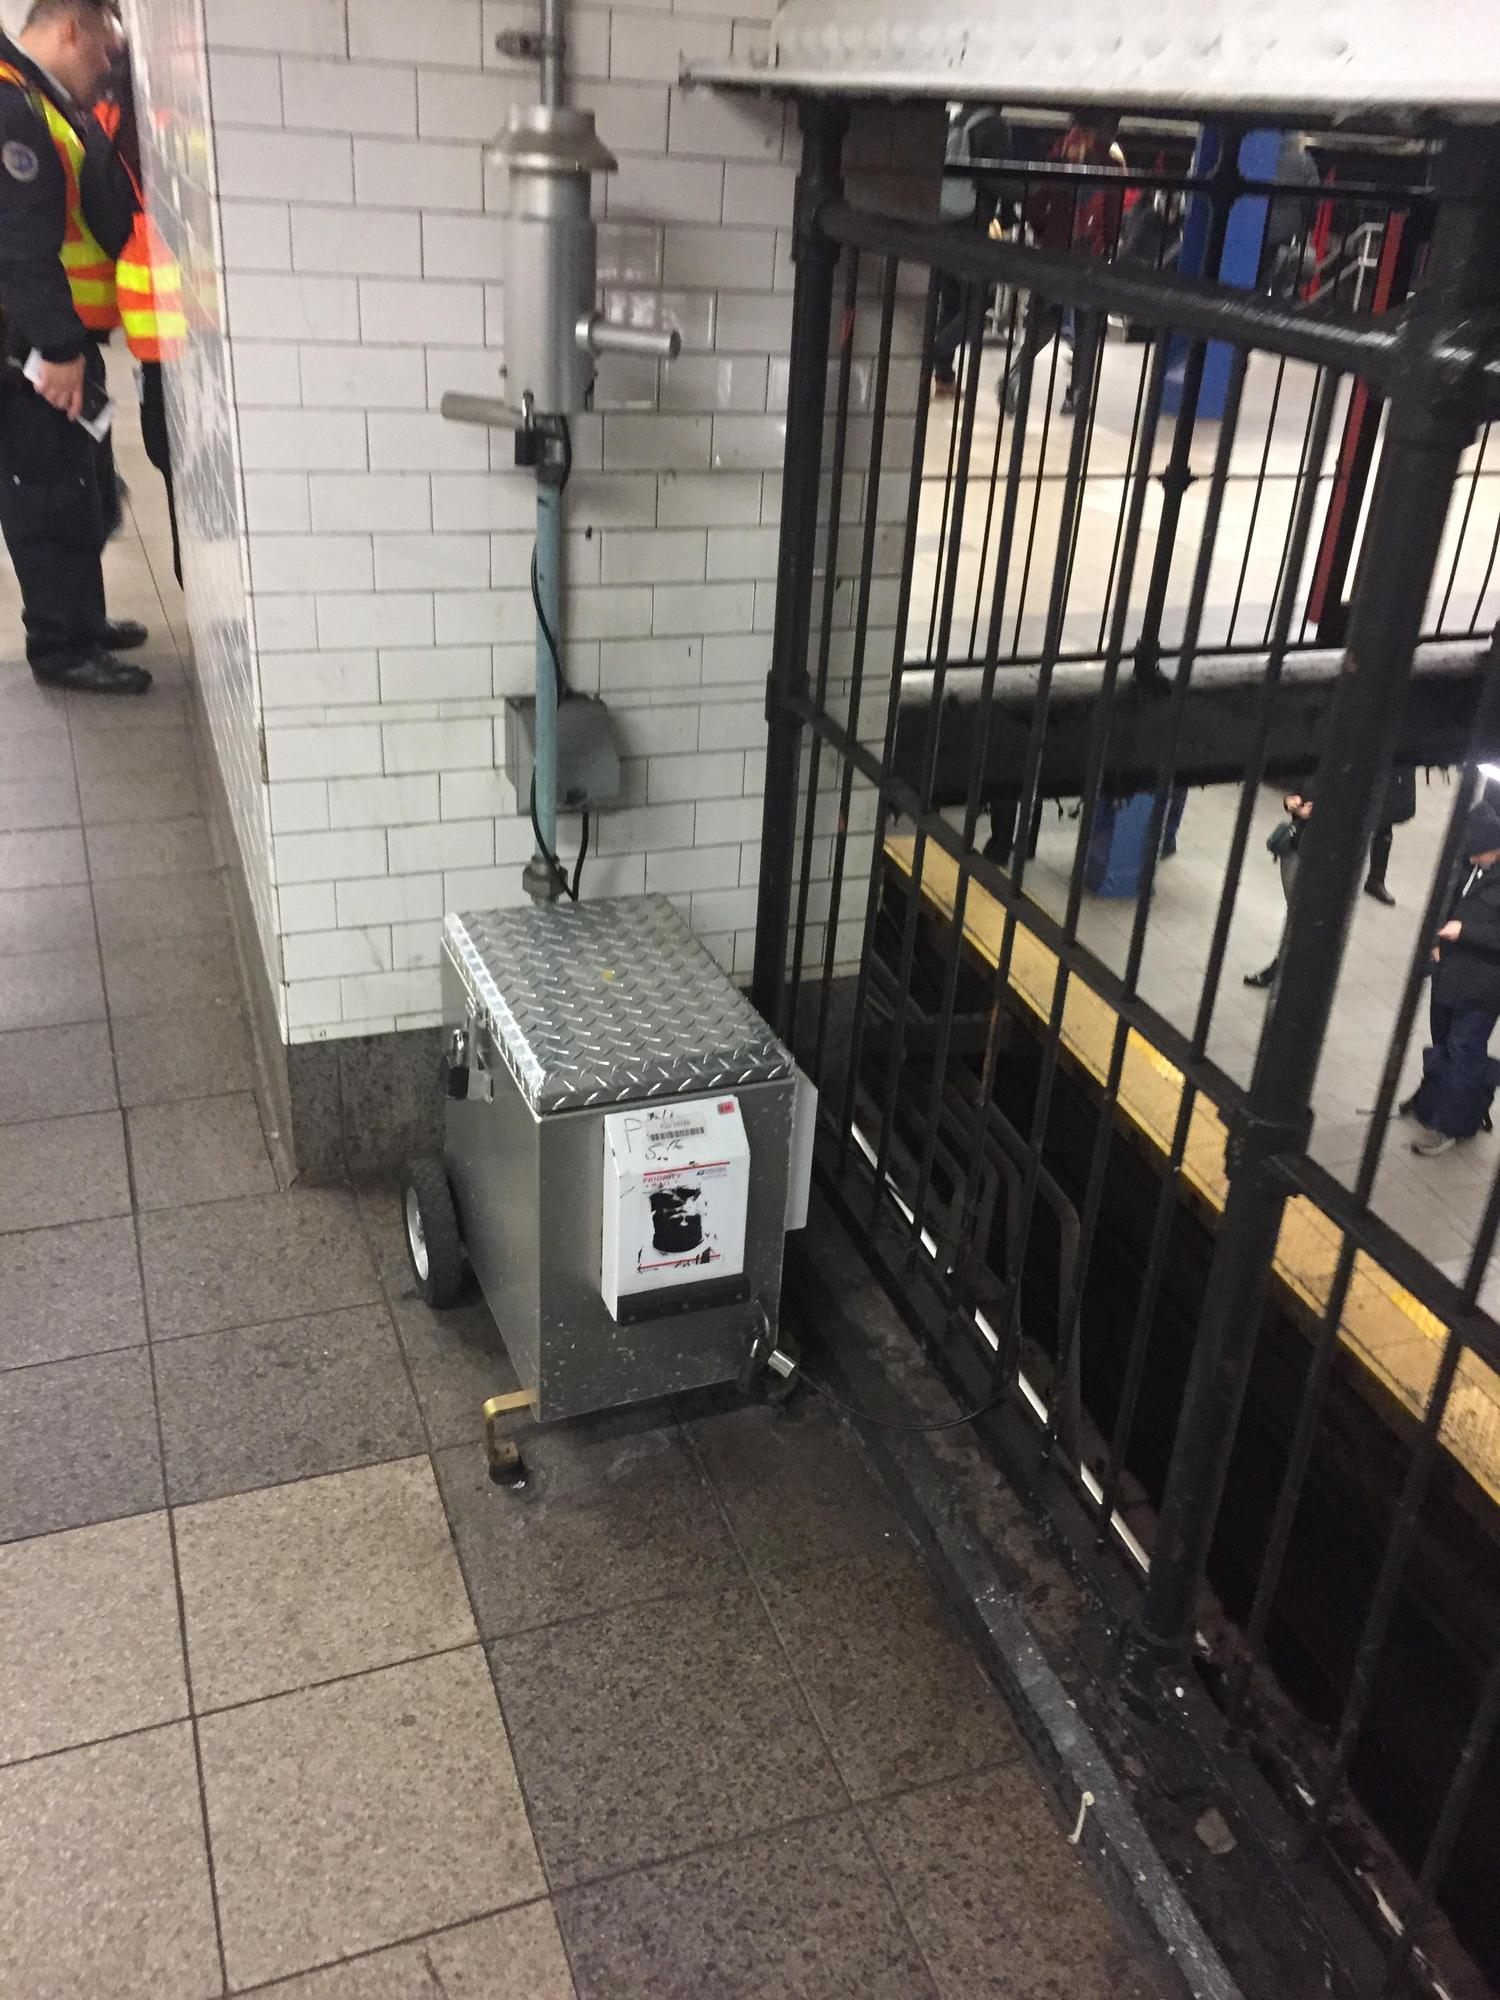 What is this machine? It's in some subway stations and it makes interesting noises.